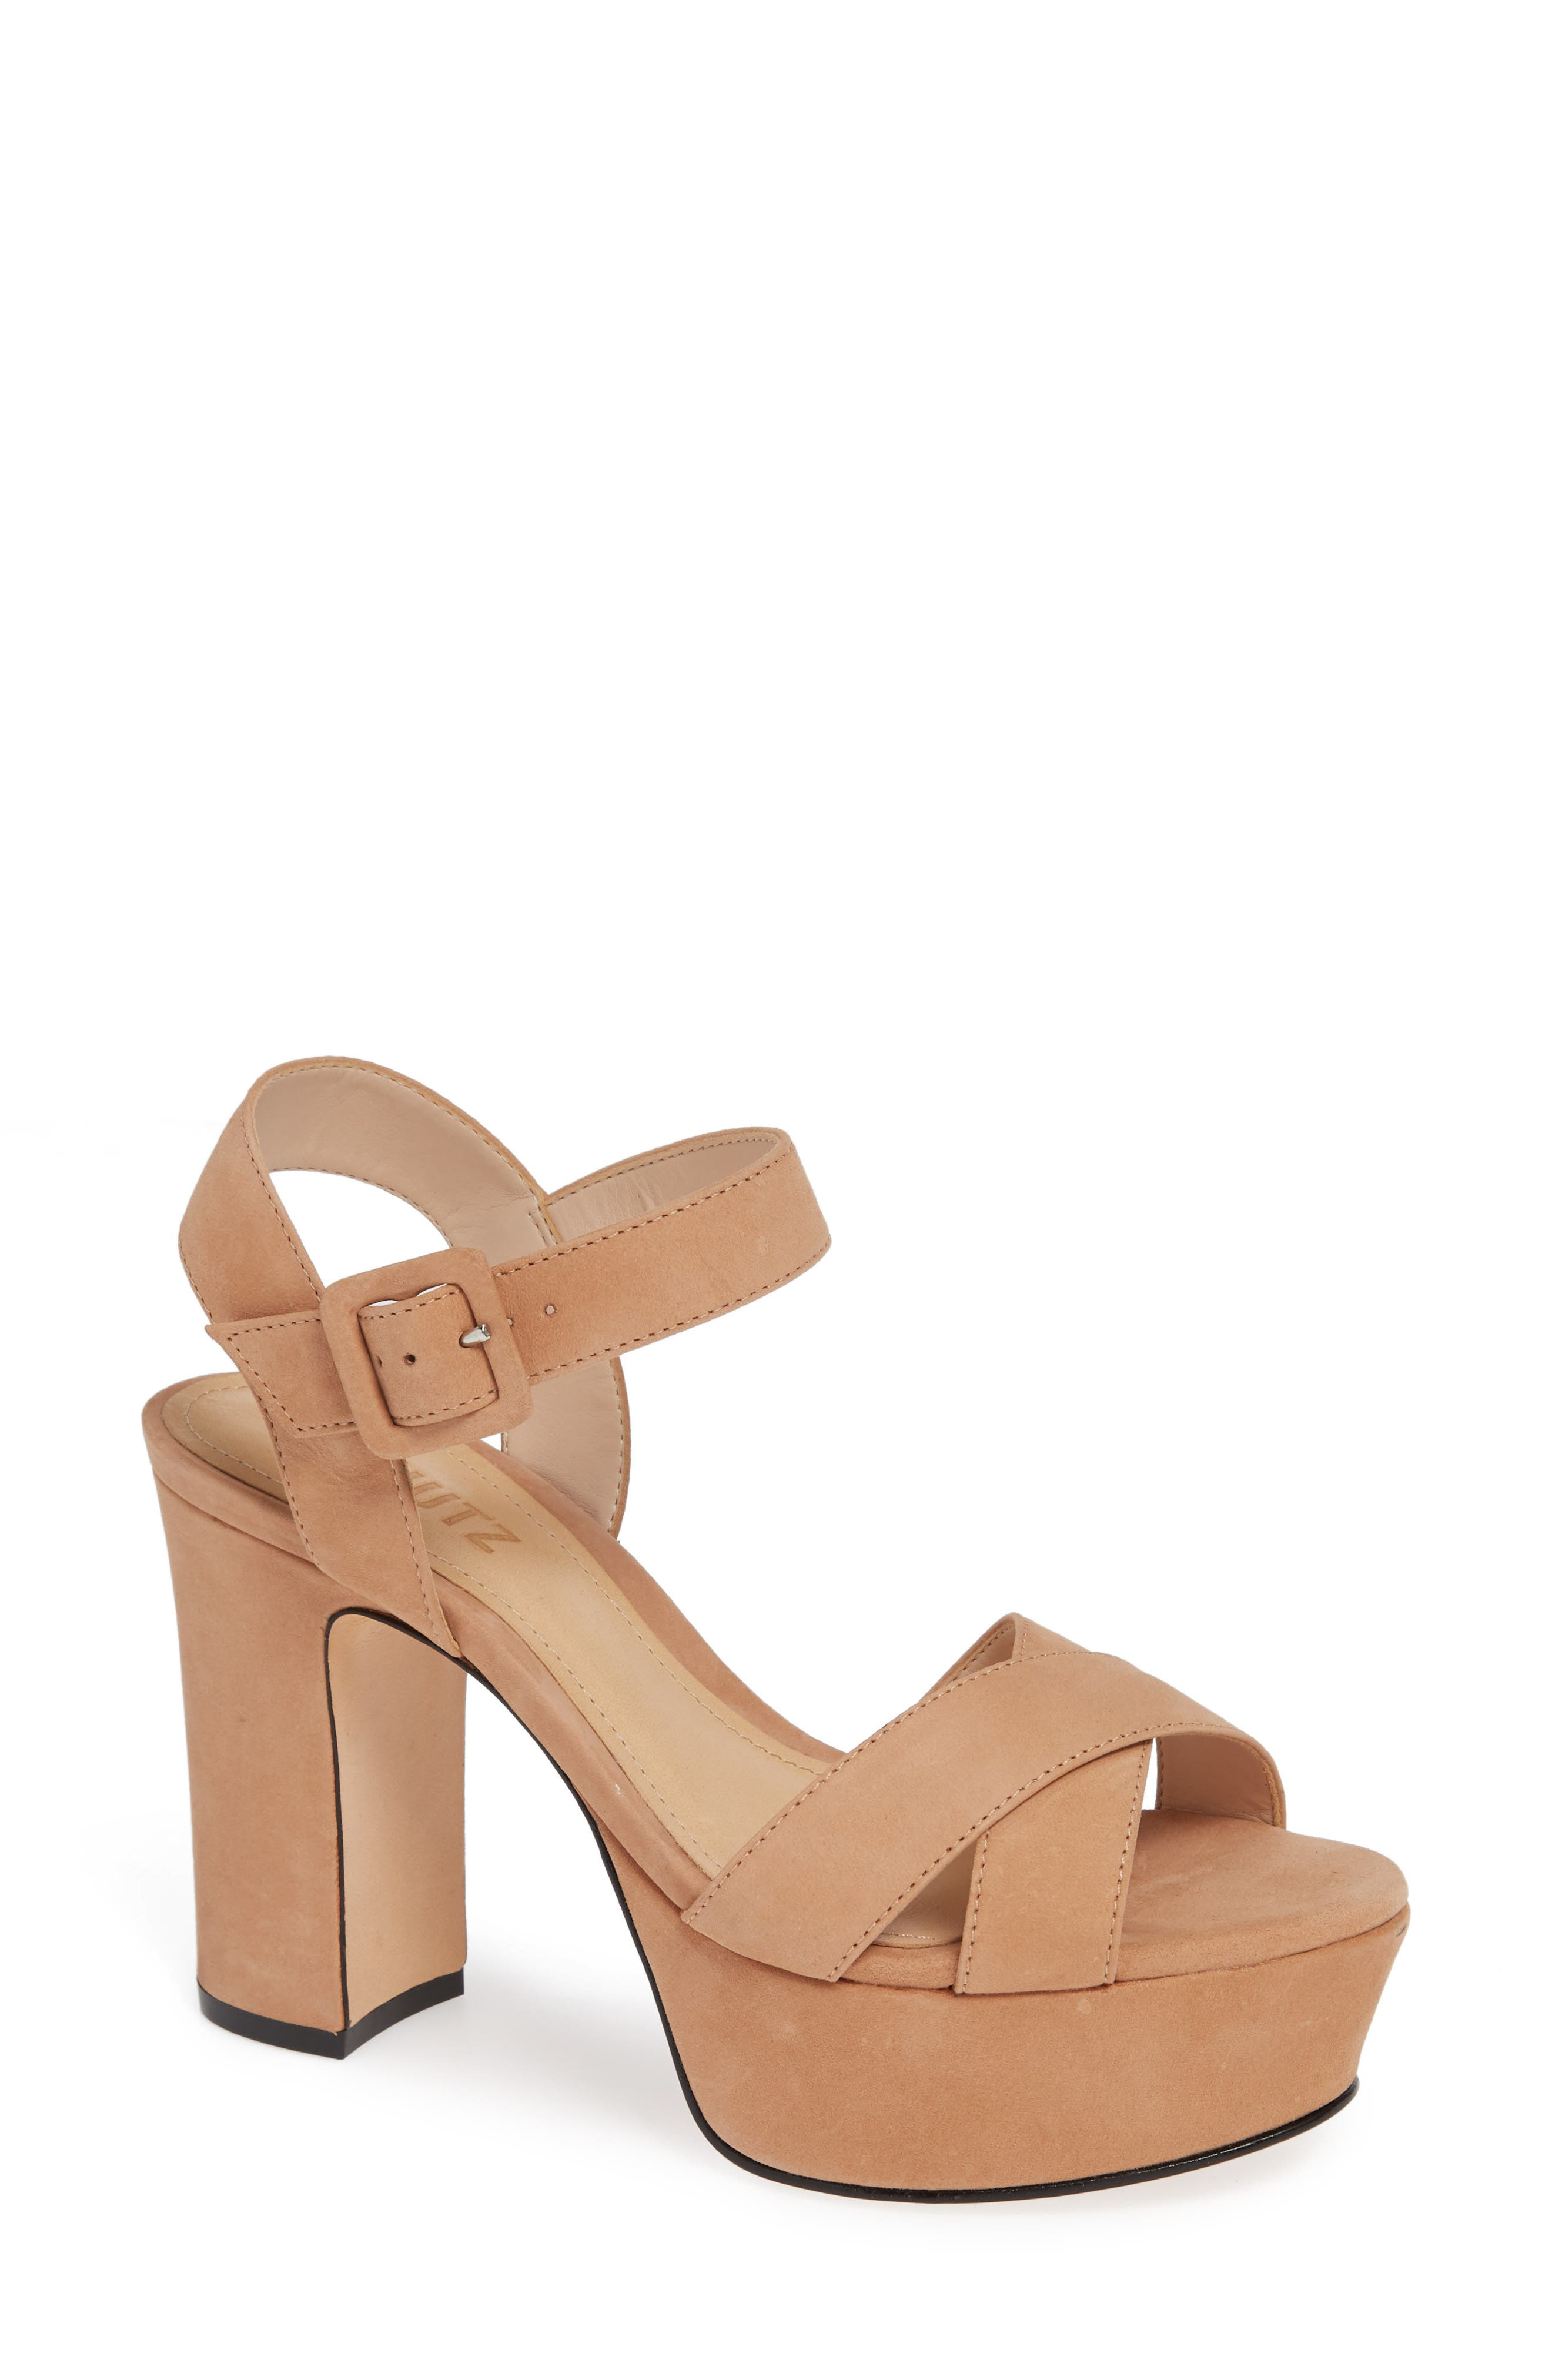 Tulia Sandal,                             Main thumbnail 1, color,                             HONEY BEIGE NUBUCK